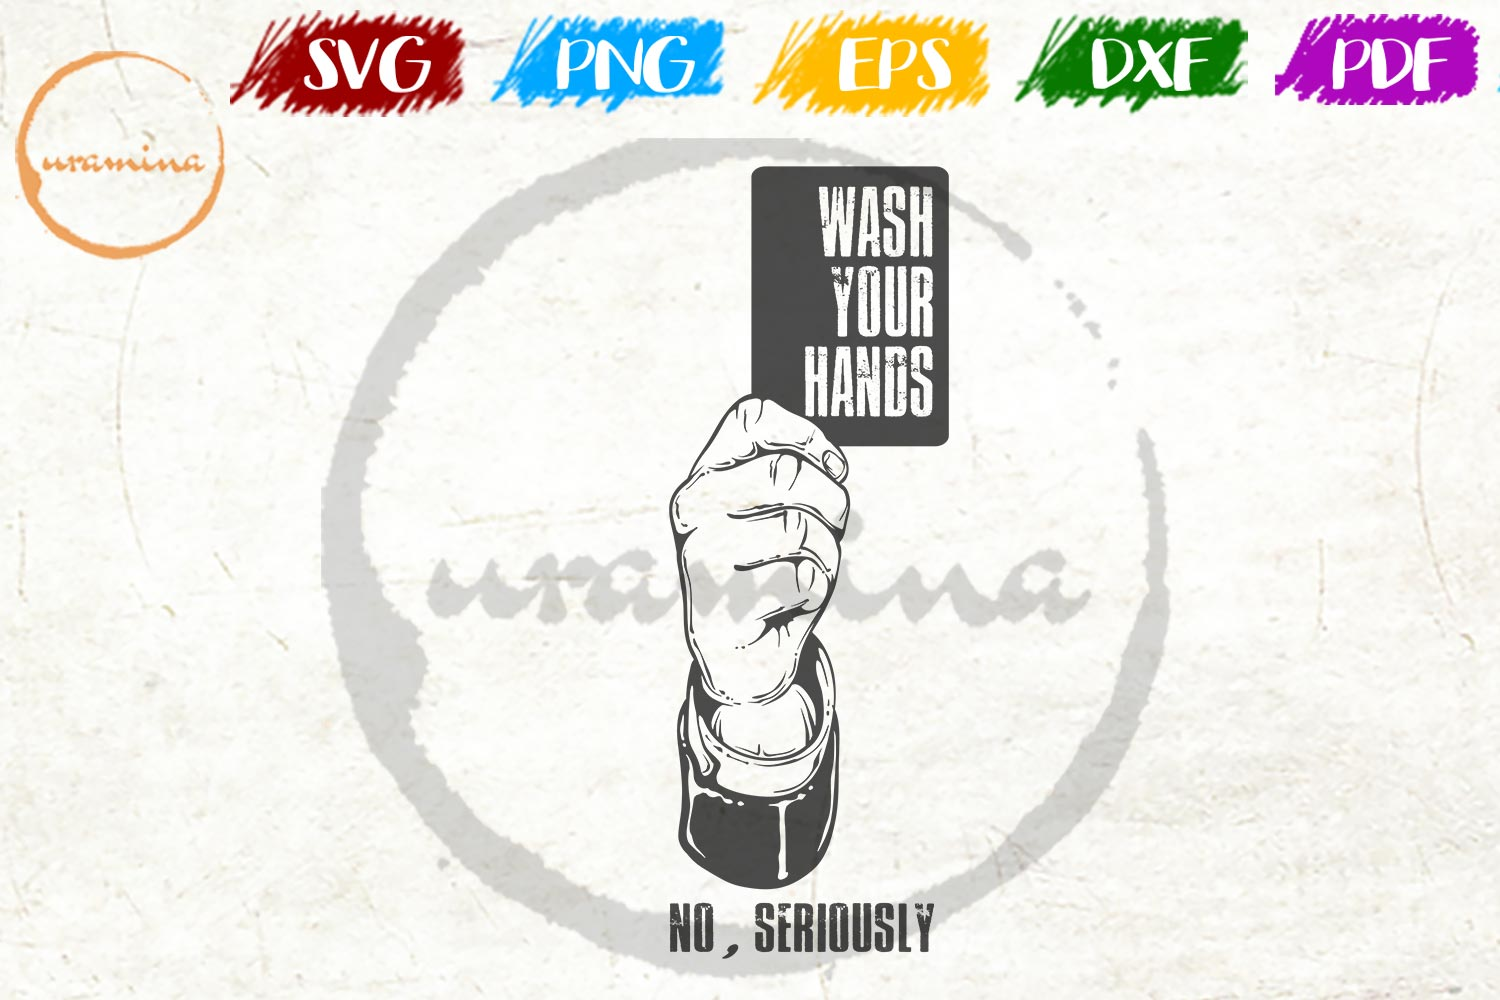 Wash Your Hands No Seriously Graphic By Uramina Creative Fabrica